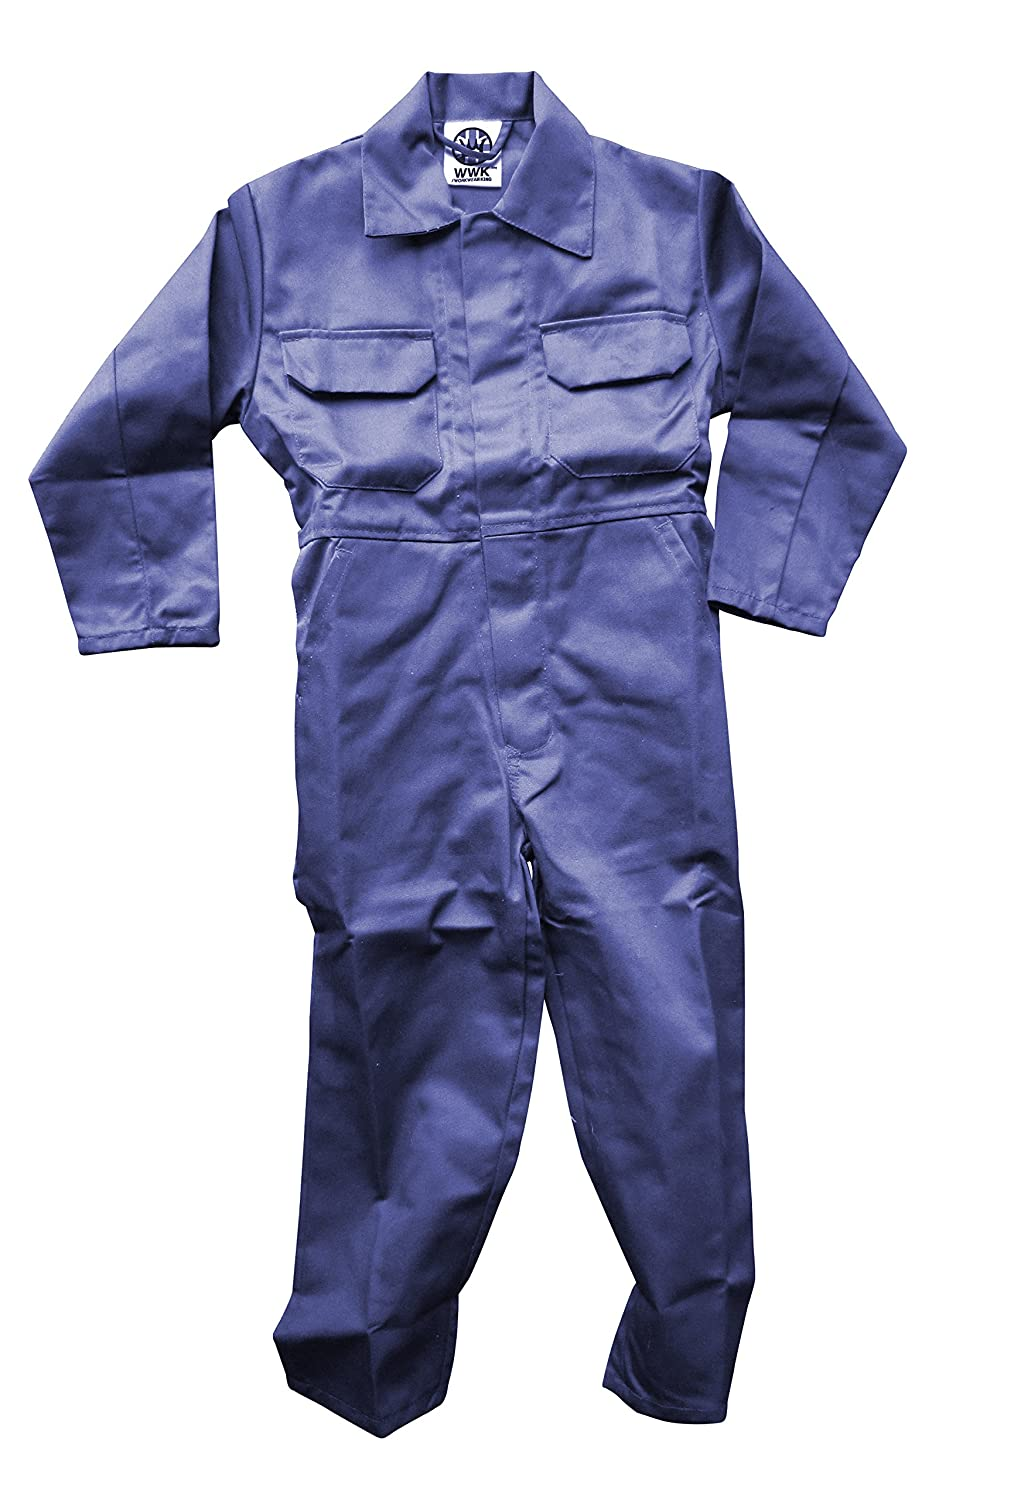 a6eb08b5bcfe4 WWK / WorkWear King Boy's Kids Childrens Boilersuit Coveralls Overalls:  Amazon.ca: Clothing & Accessories